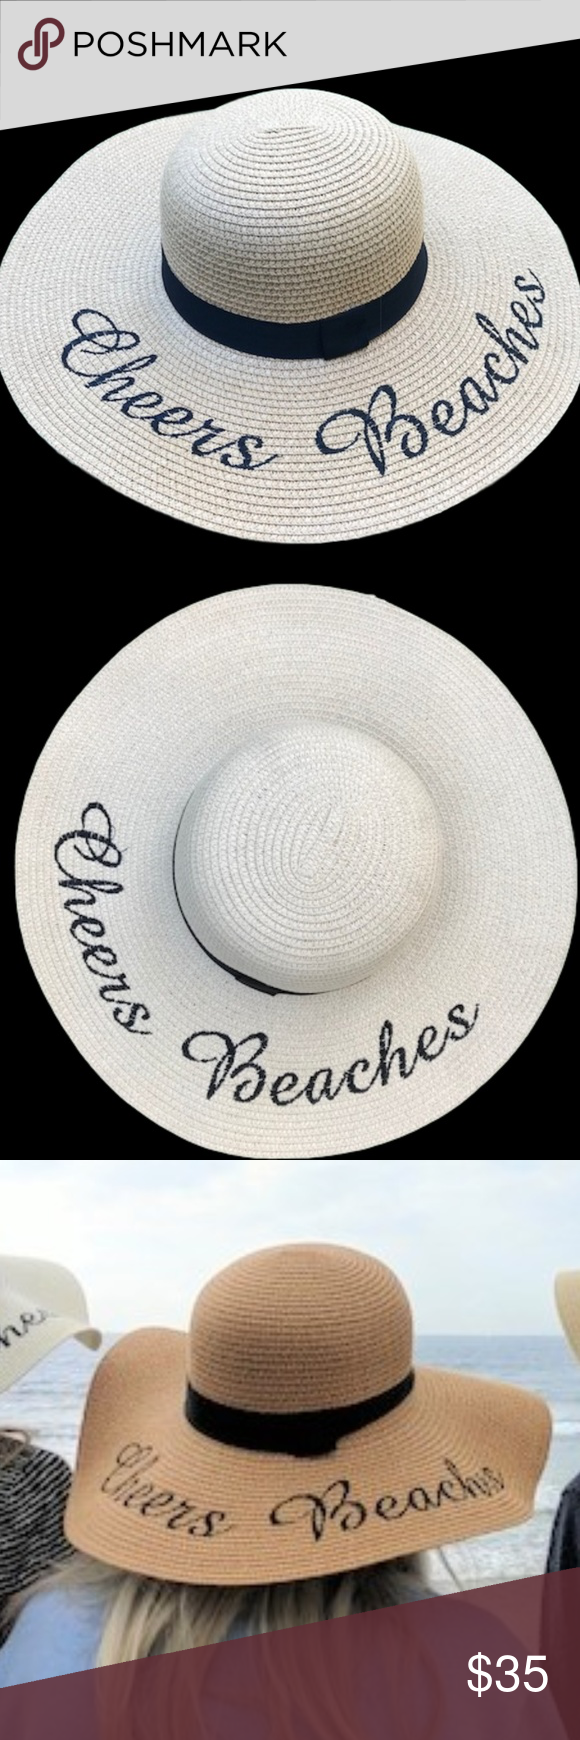 d8d2a38a Cheers Beaches Floppy Beach Hat in Tan These embroidered straw hats are one  size fits all